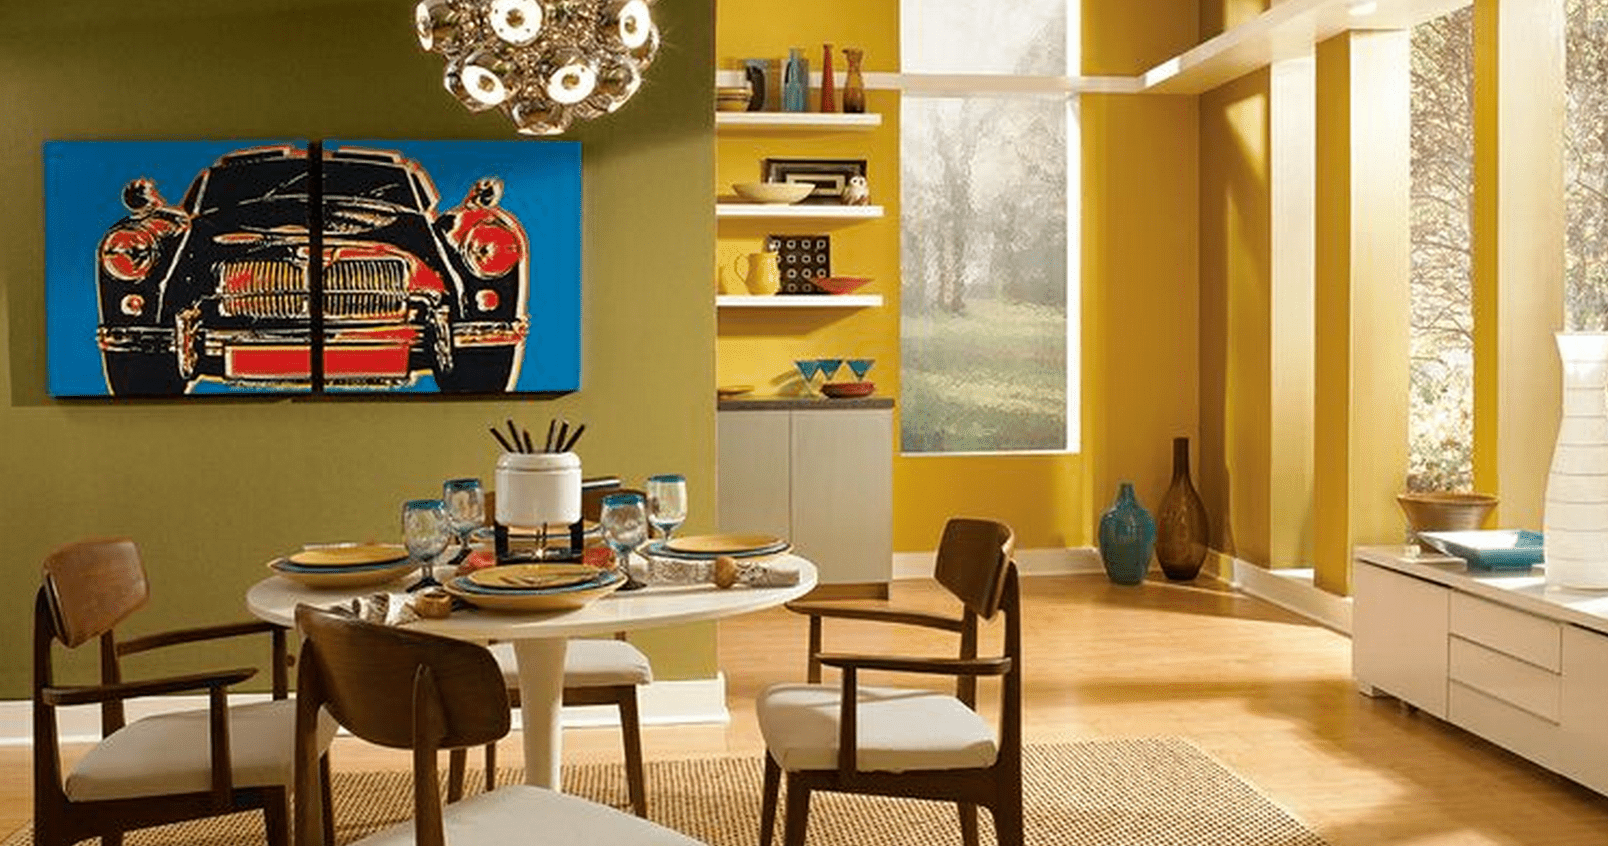 Color copycat how to decorate a mid century modern room for Mid century modern design principles